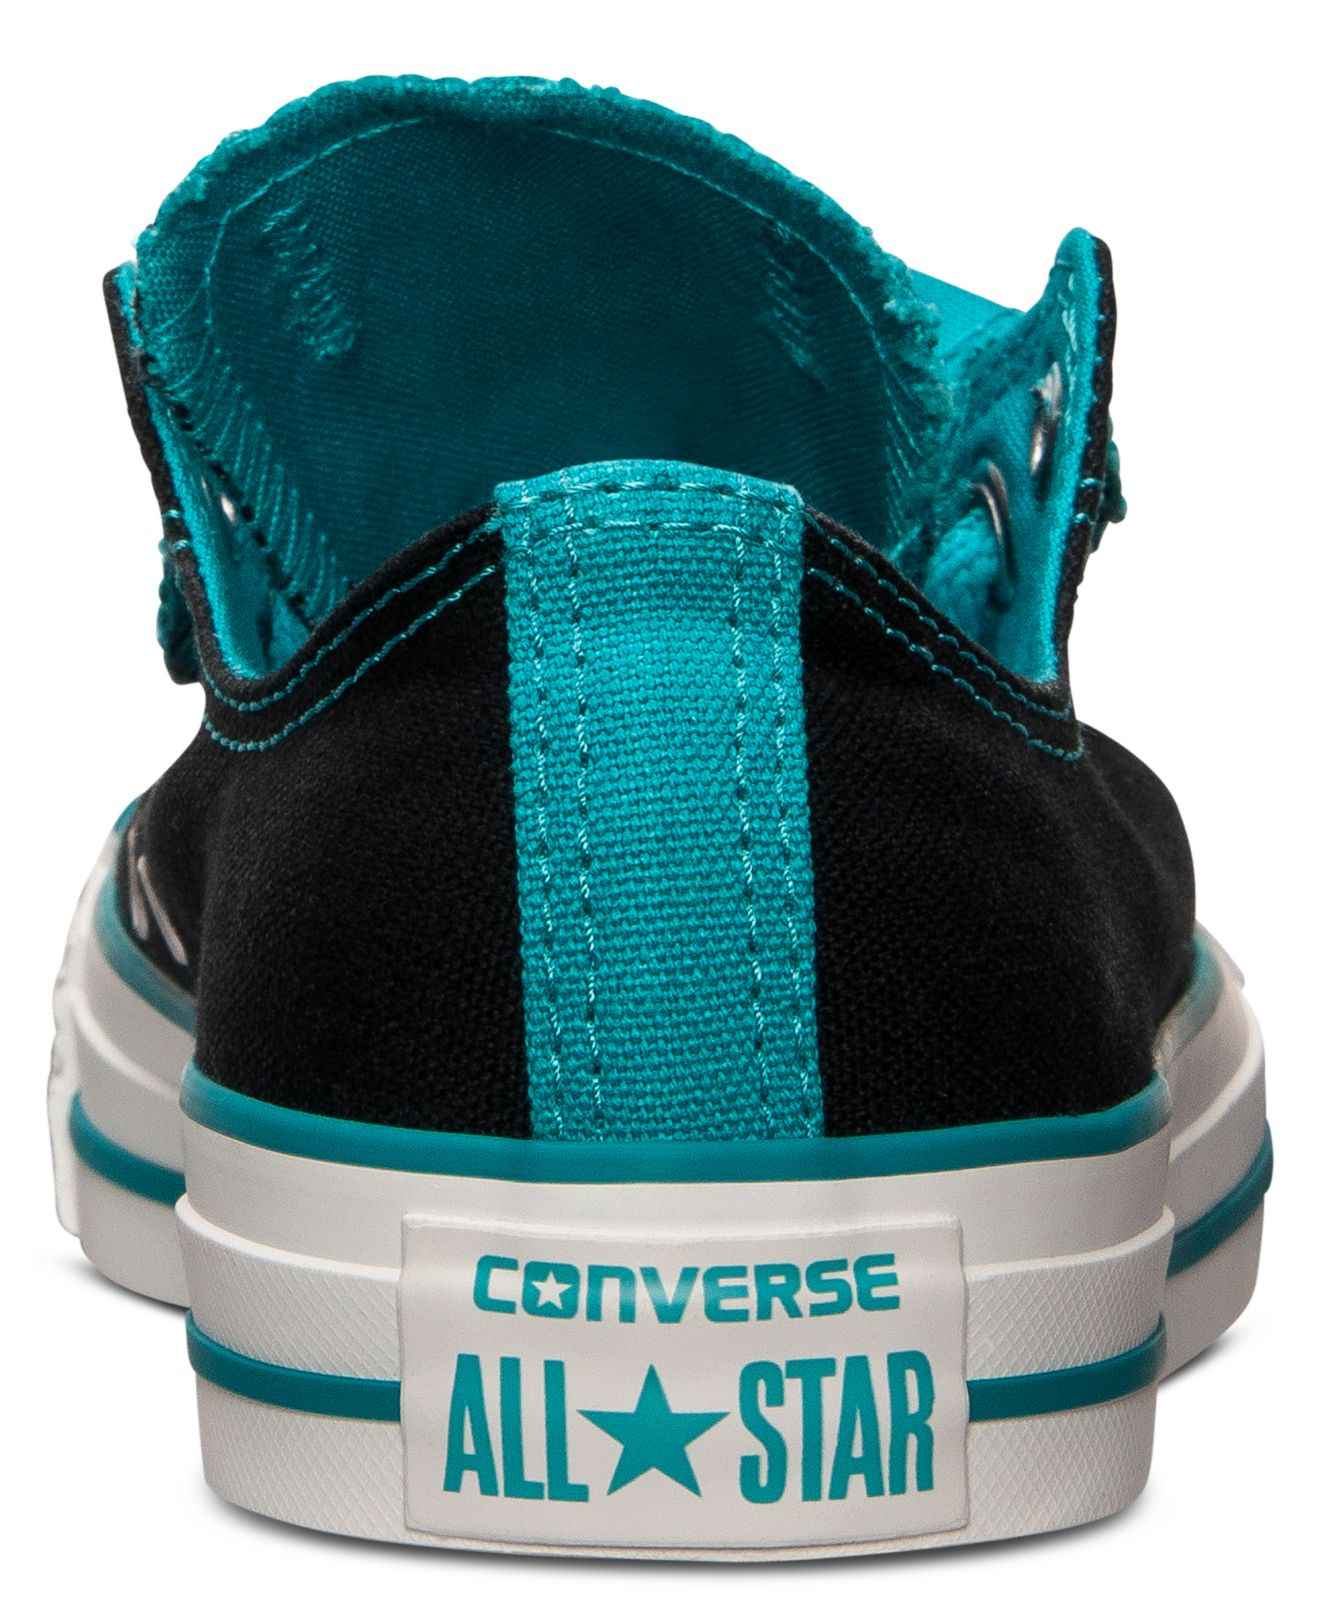 c7d7b0fe79fc Lyst - Converse Women S Chuck Taylor All Star Double Tongue Casual Sneakers  From Finish Line in Black